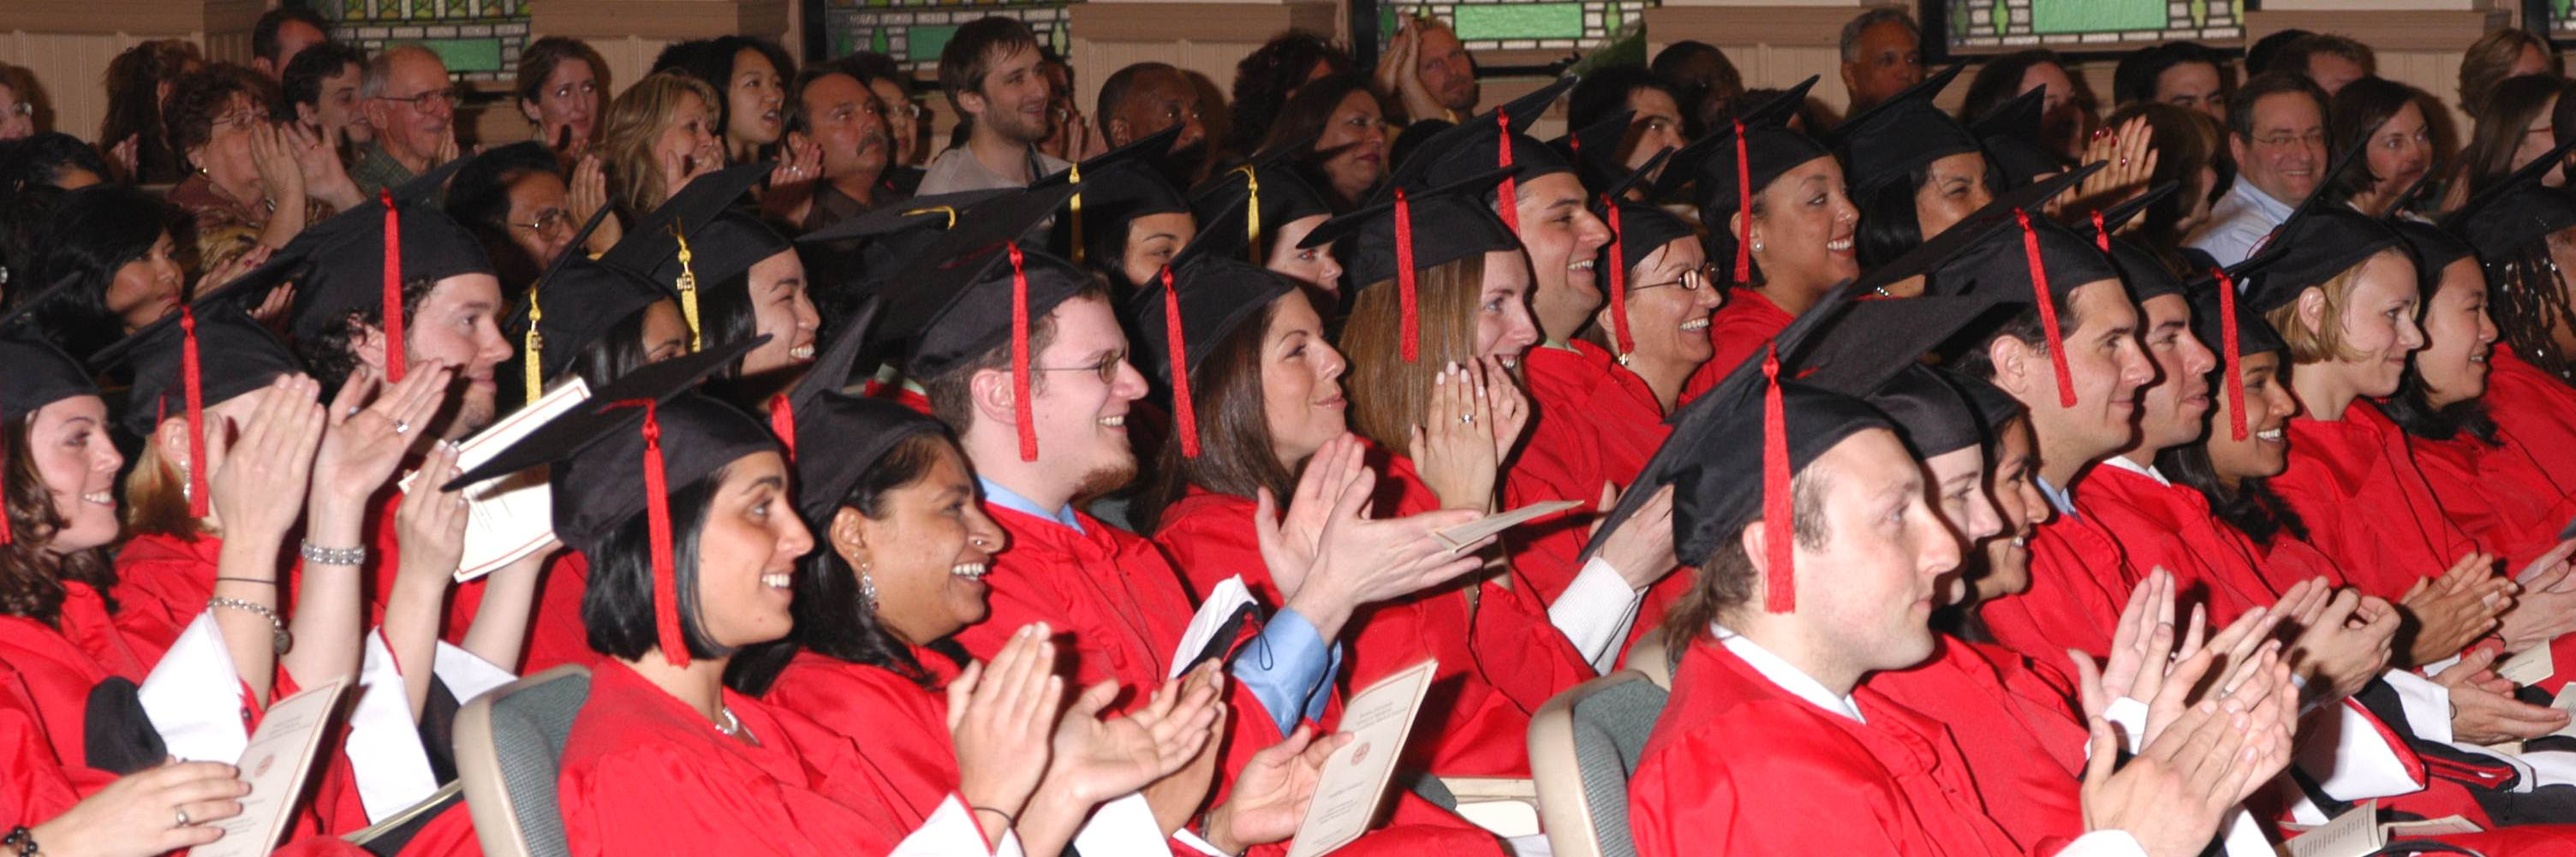 graduating students clapping at ceremony